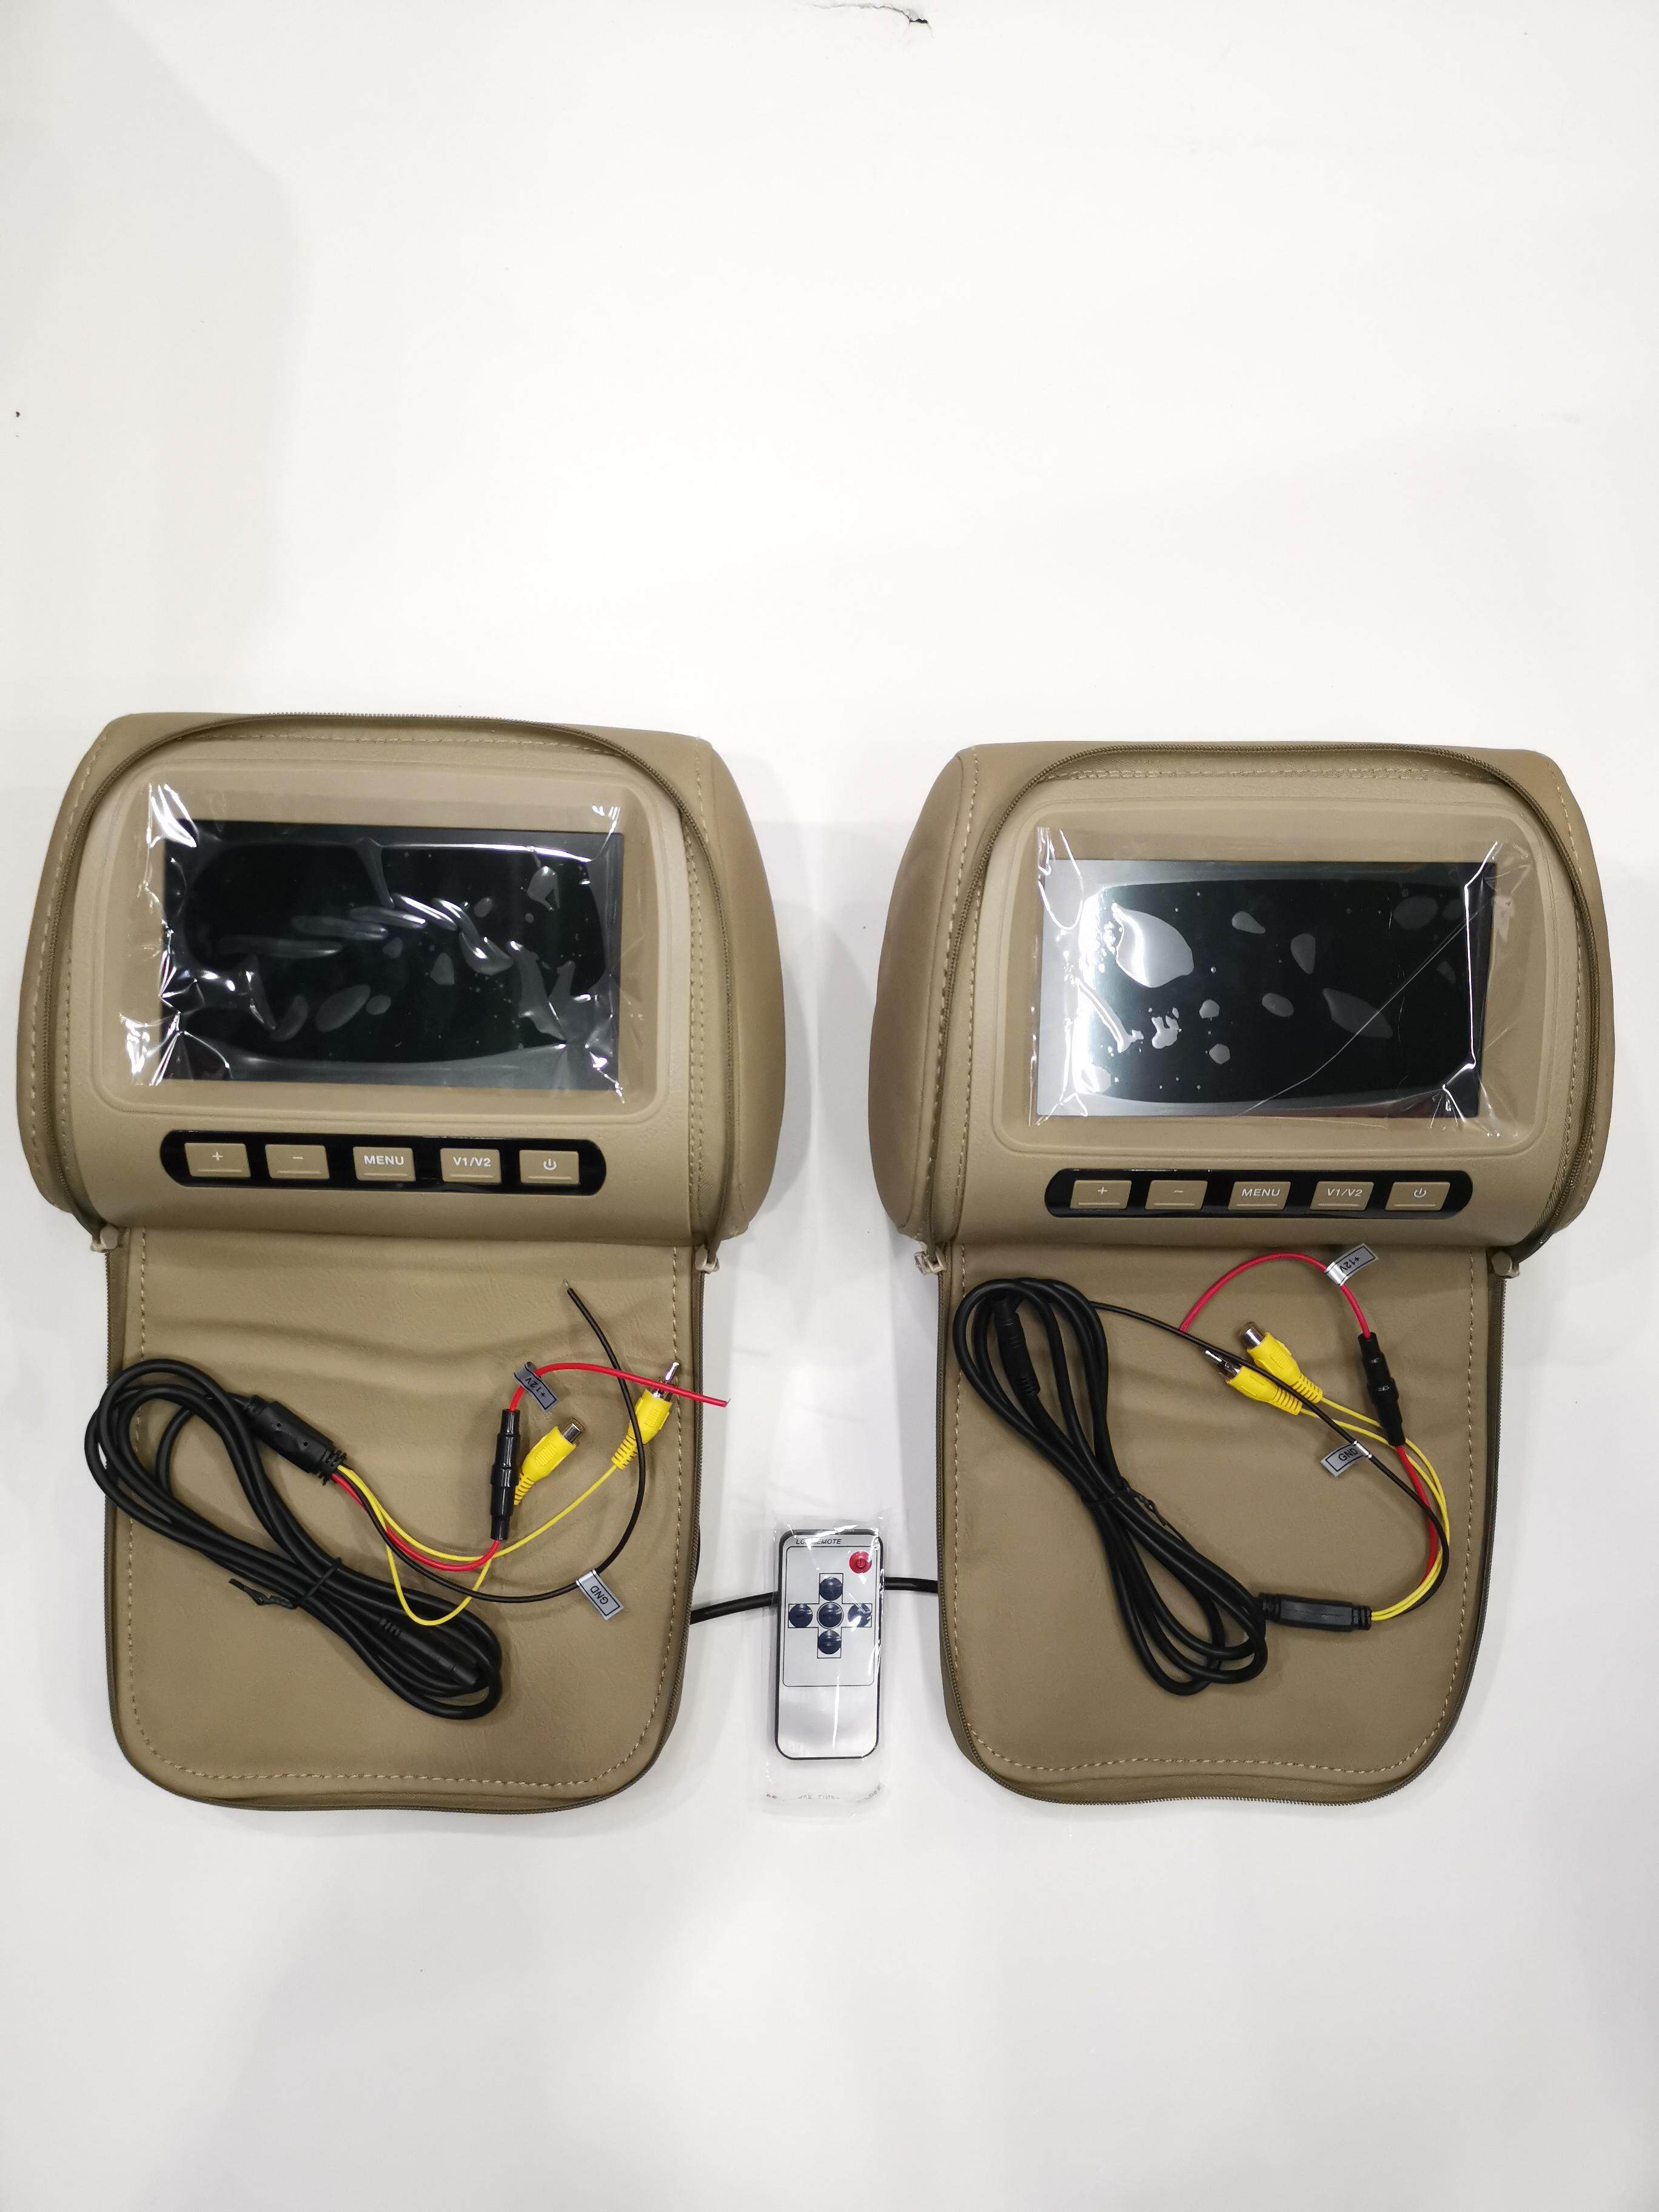 2 pcs 7 TFT LCD Monitor Headrest With Universal Mount Pillow Black,Grey ,Beige